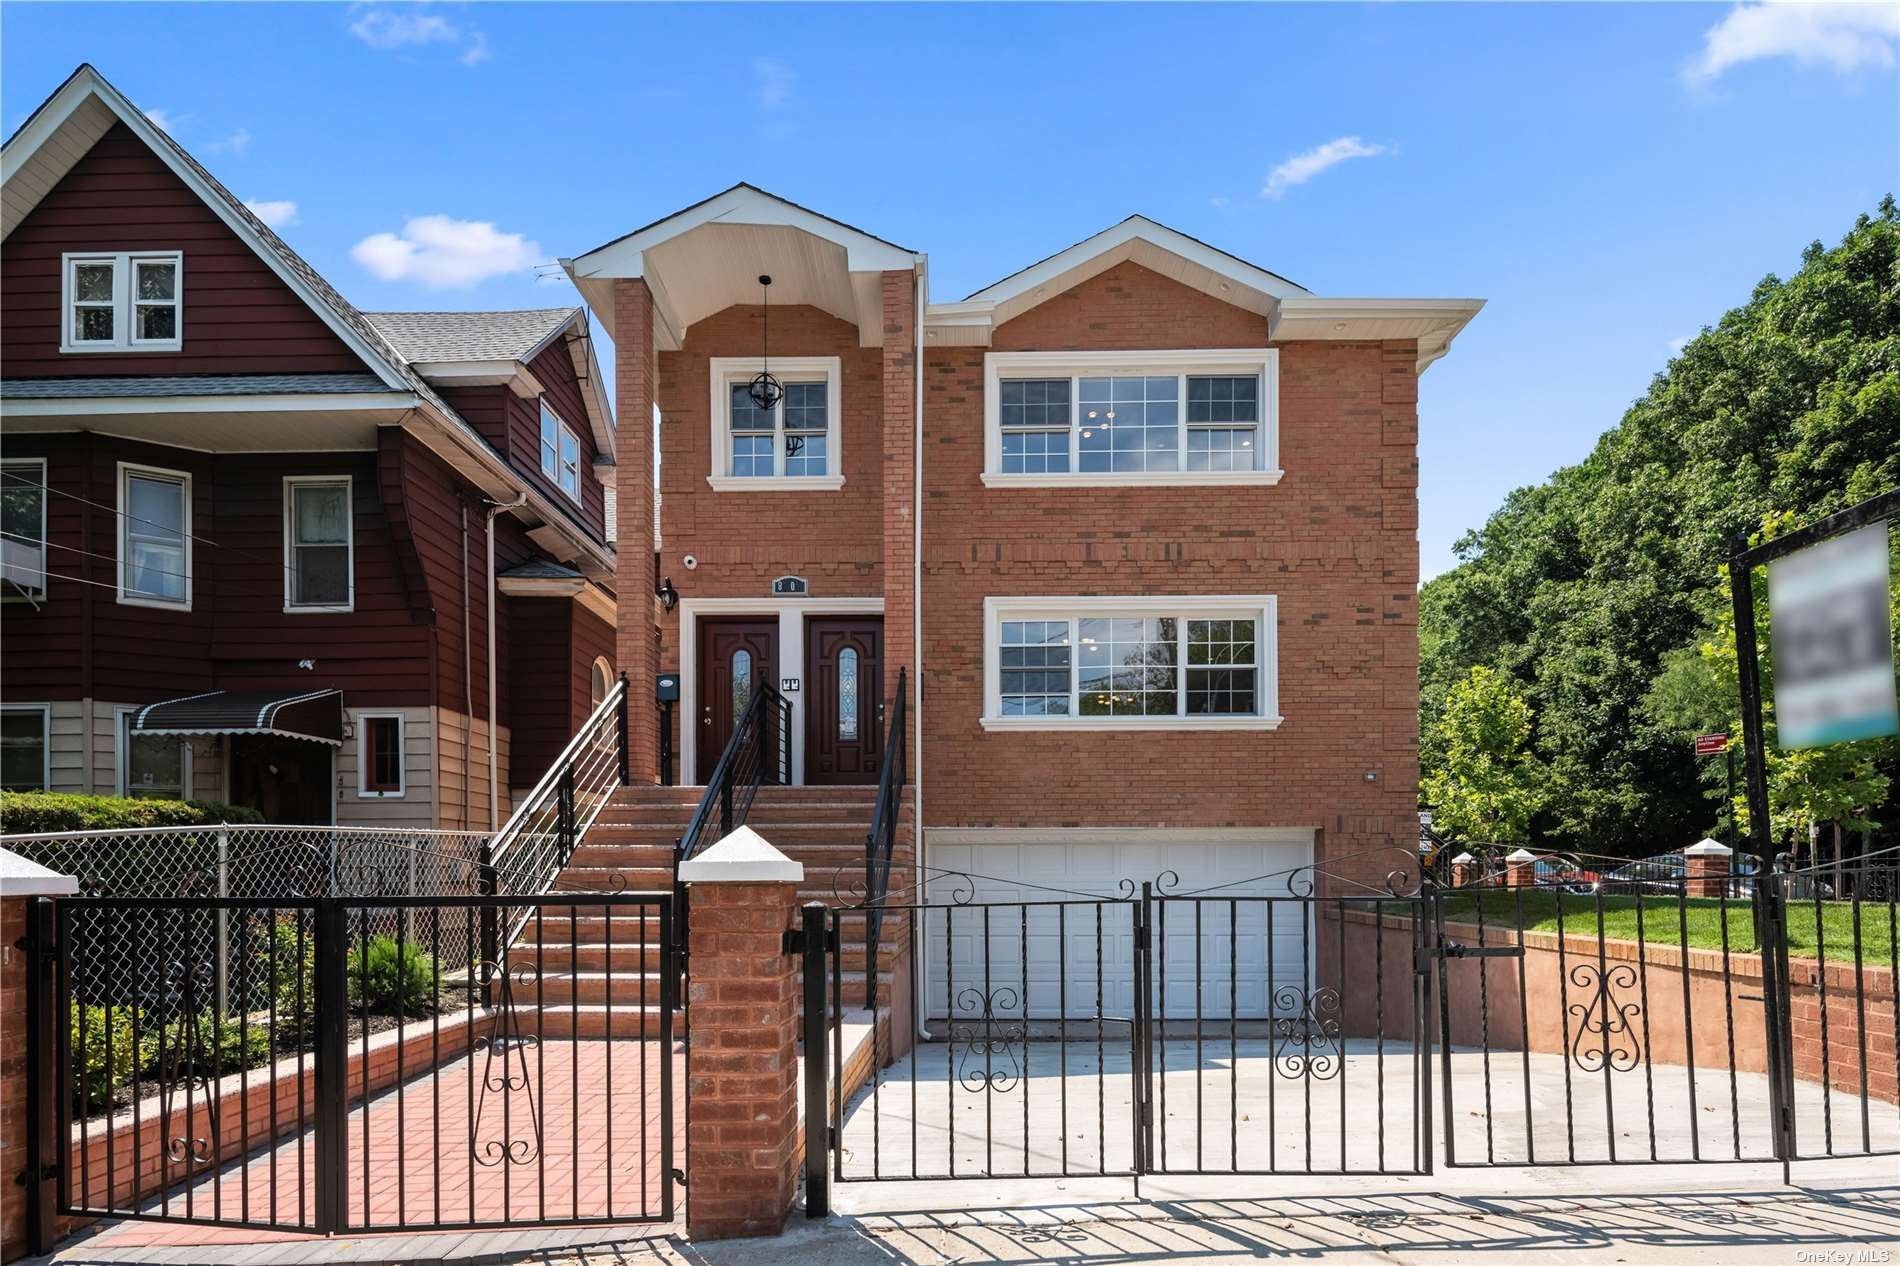 84-04 Forest Parkway, Woodhaven, NY 11421 - MLS#: 3300899